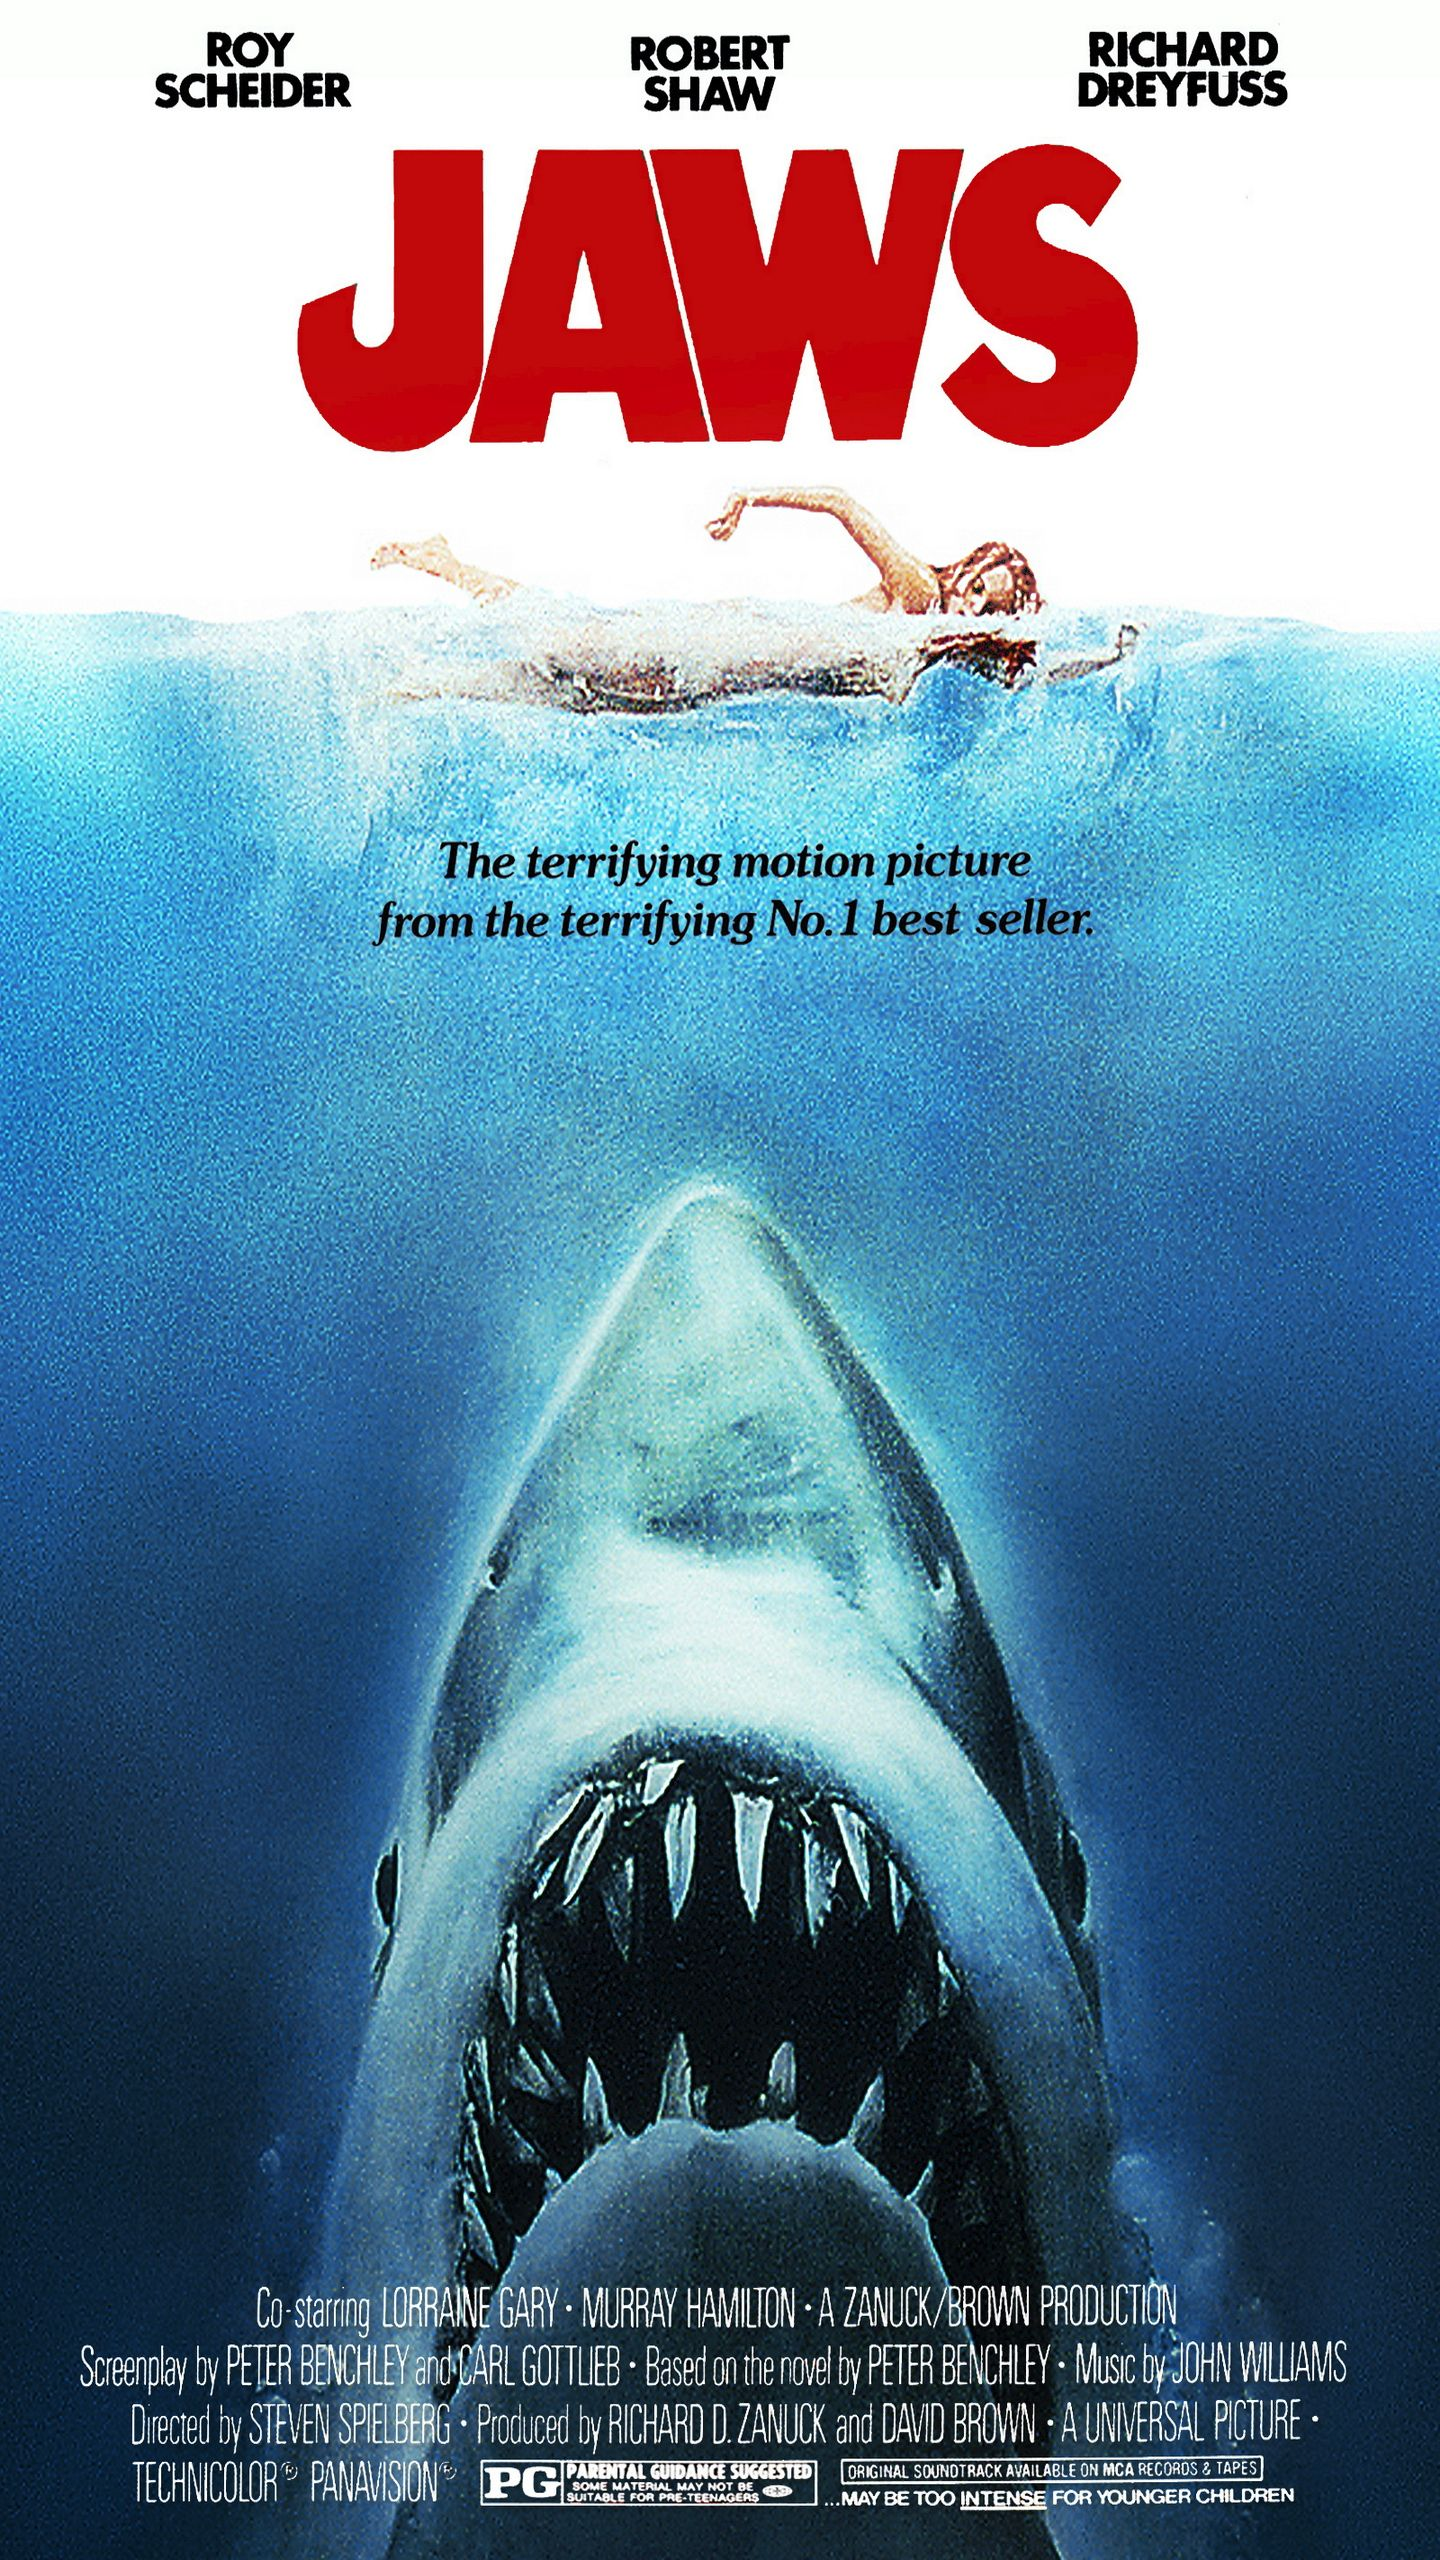 Jaws Hd Wallpaper Jaws Movie Poster Famous Movie Posters Iconic Movie Posters